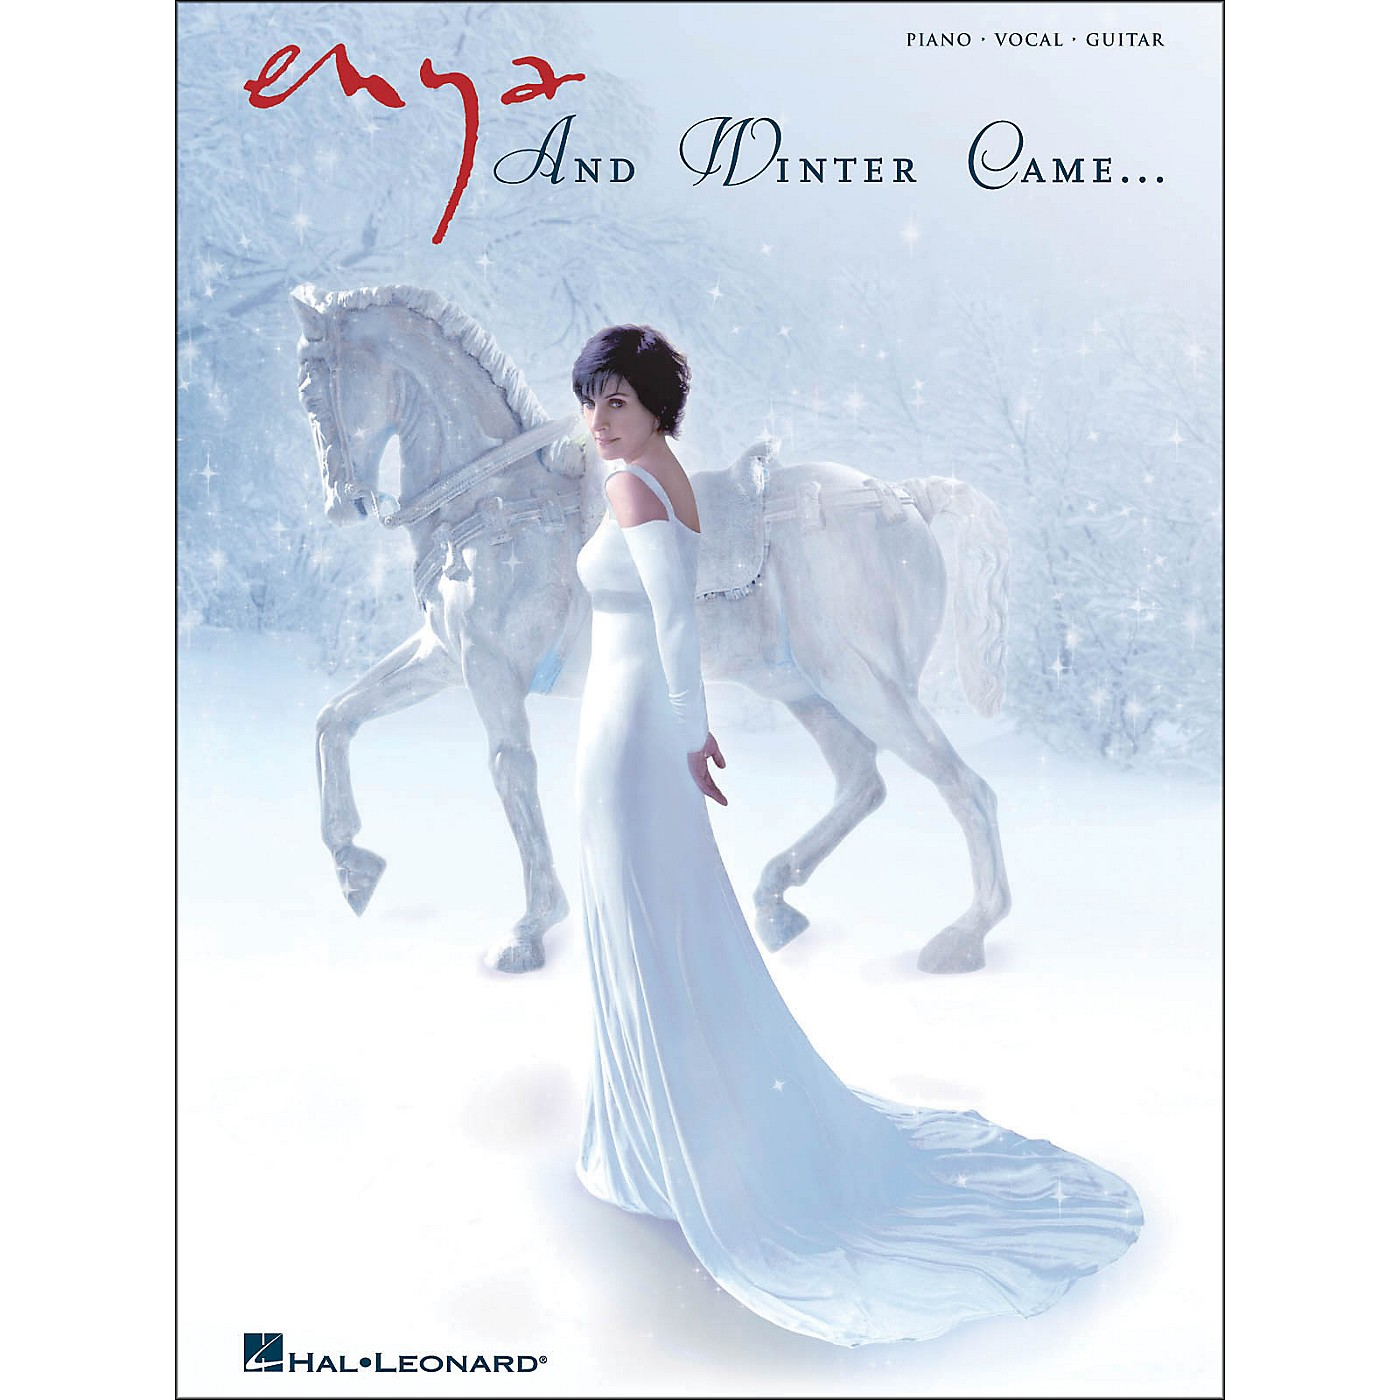 Hal Leonard Enya - And Winter Came arranged for piano, vocal, and guitar (P/V/G) thumbnail